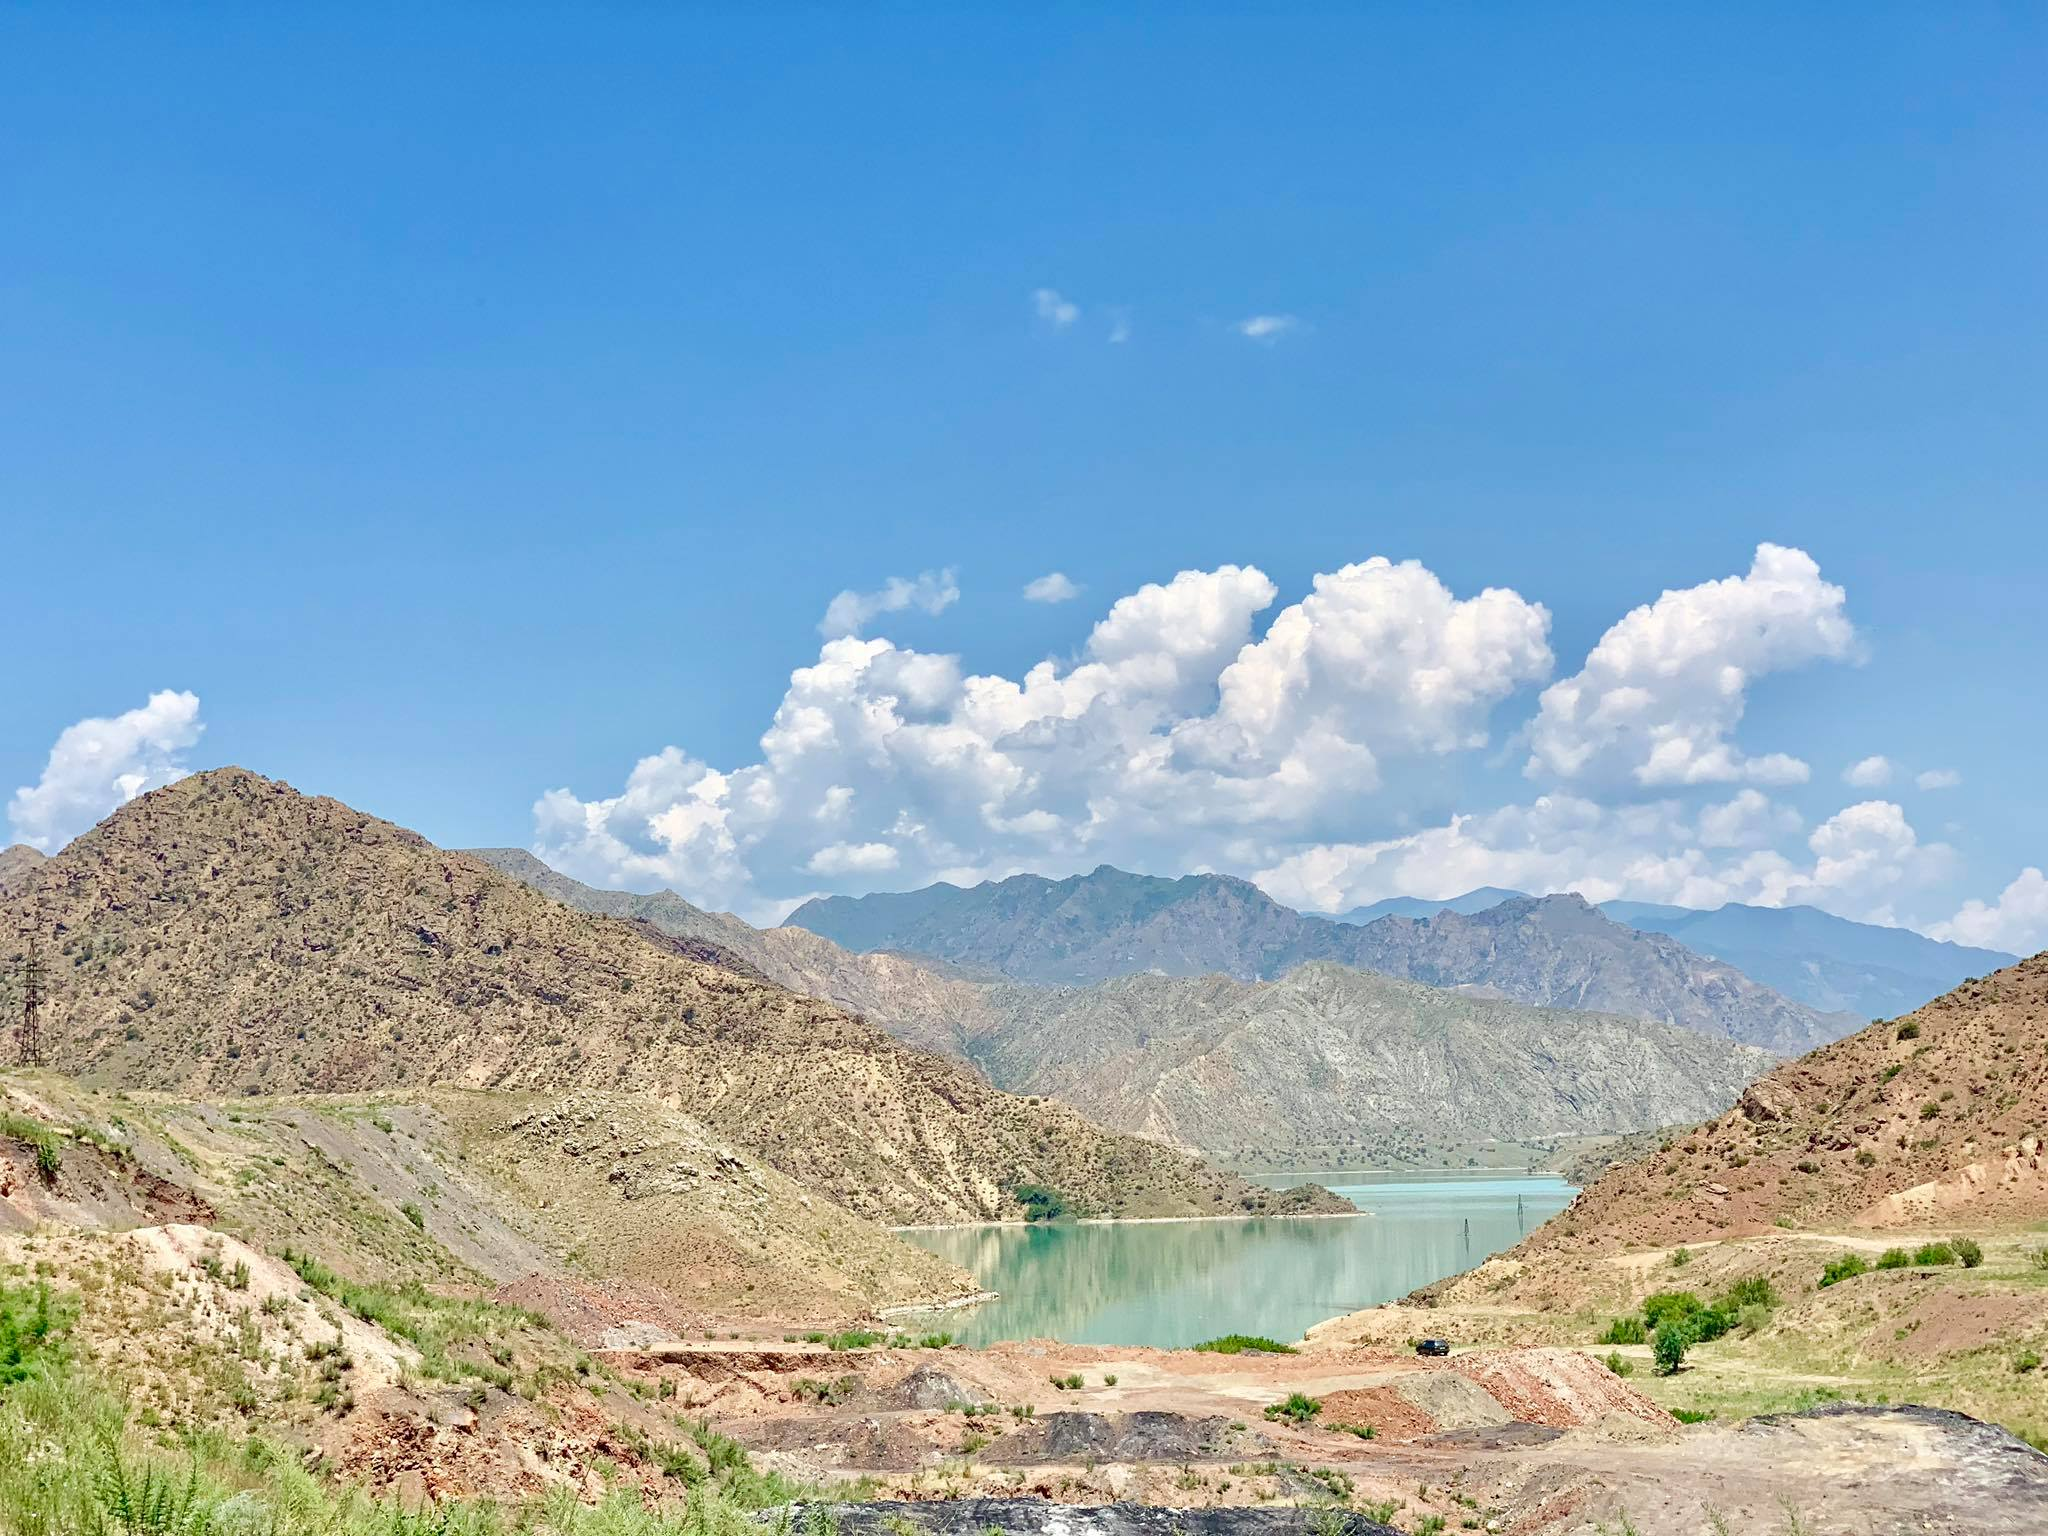 Kach Solo Travels in 2019 Roadtrip to Sary Chelek Lake which is 330 km. from Osh, Kyrgyzstan.jpg